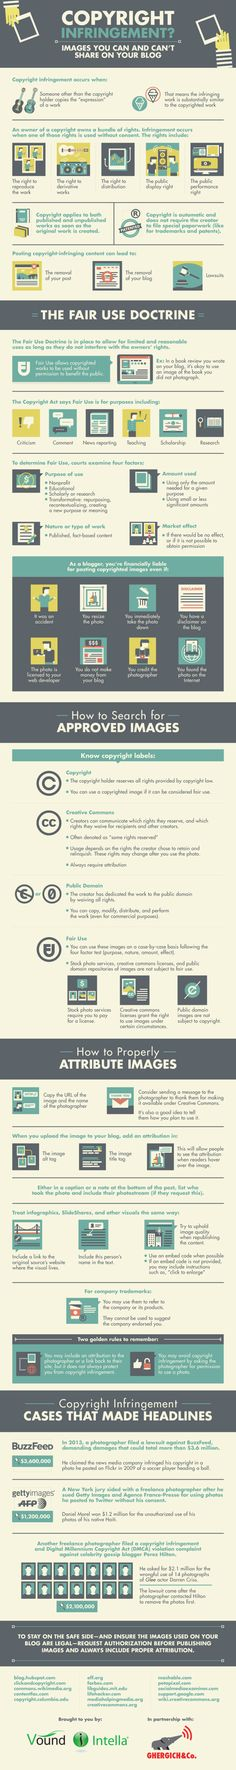 Is Your Website Breaking Image Copyright Laws This Guide Will Tell You  #WebDesign #Copyright